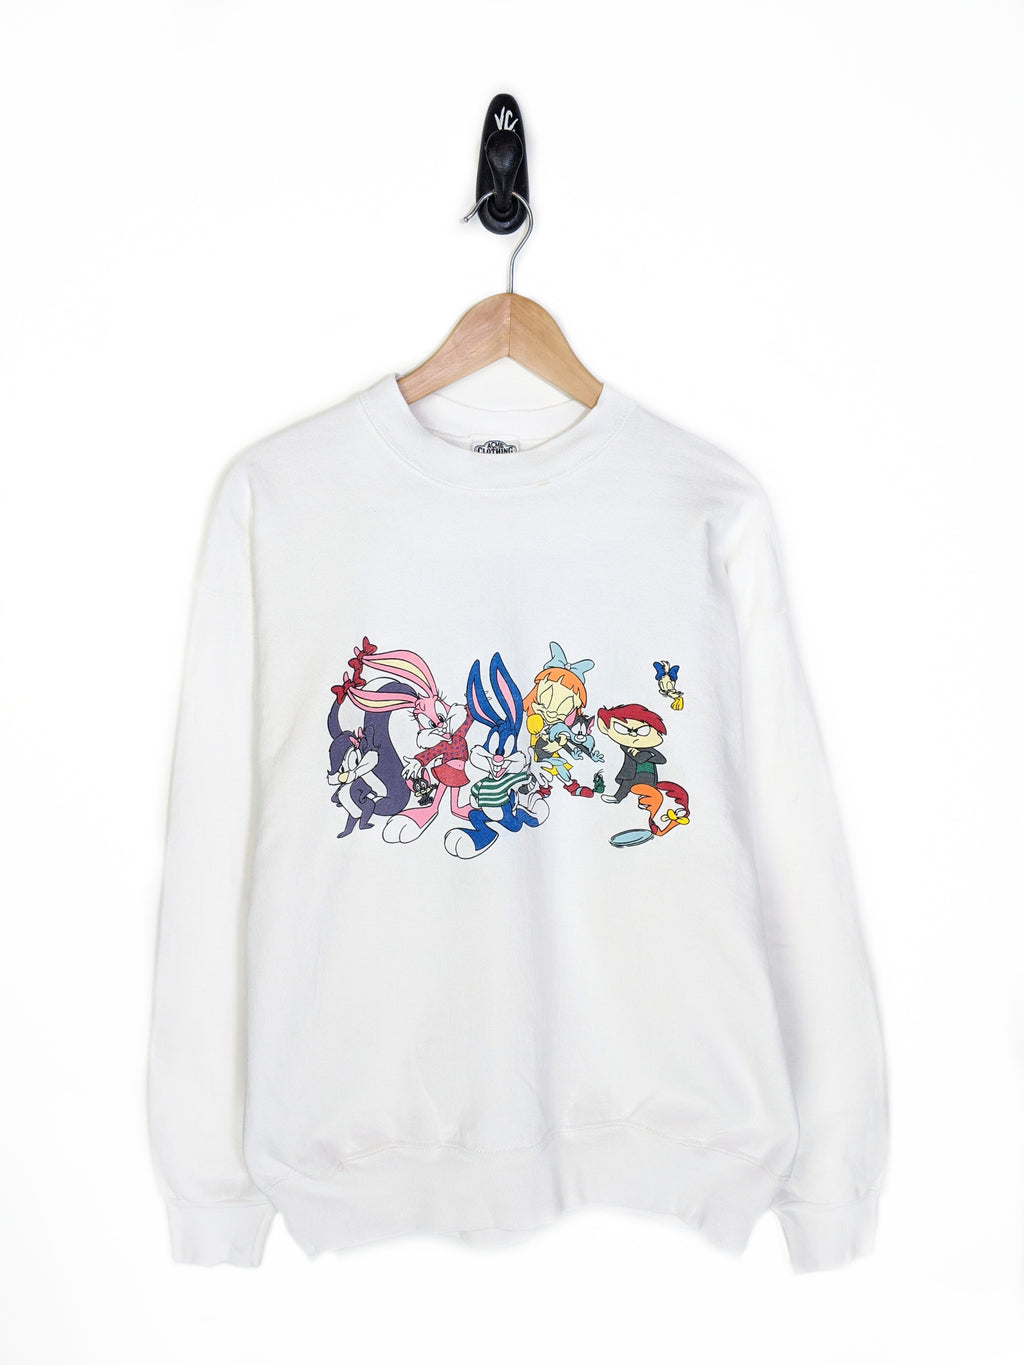 Tiny Tunes Adventures Sweatshirt (L)